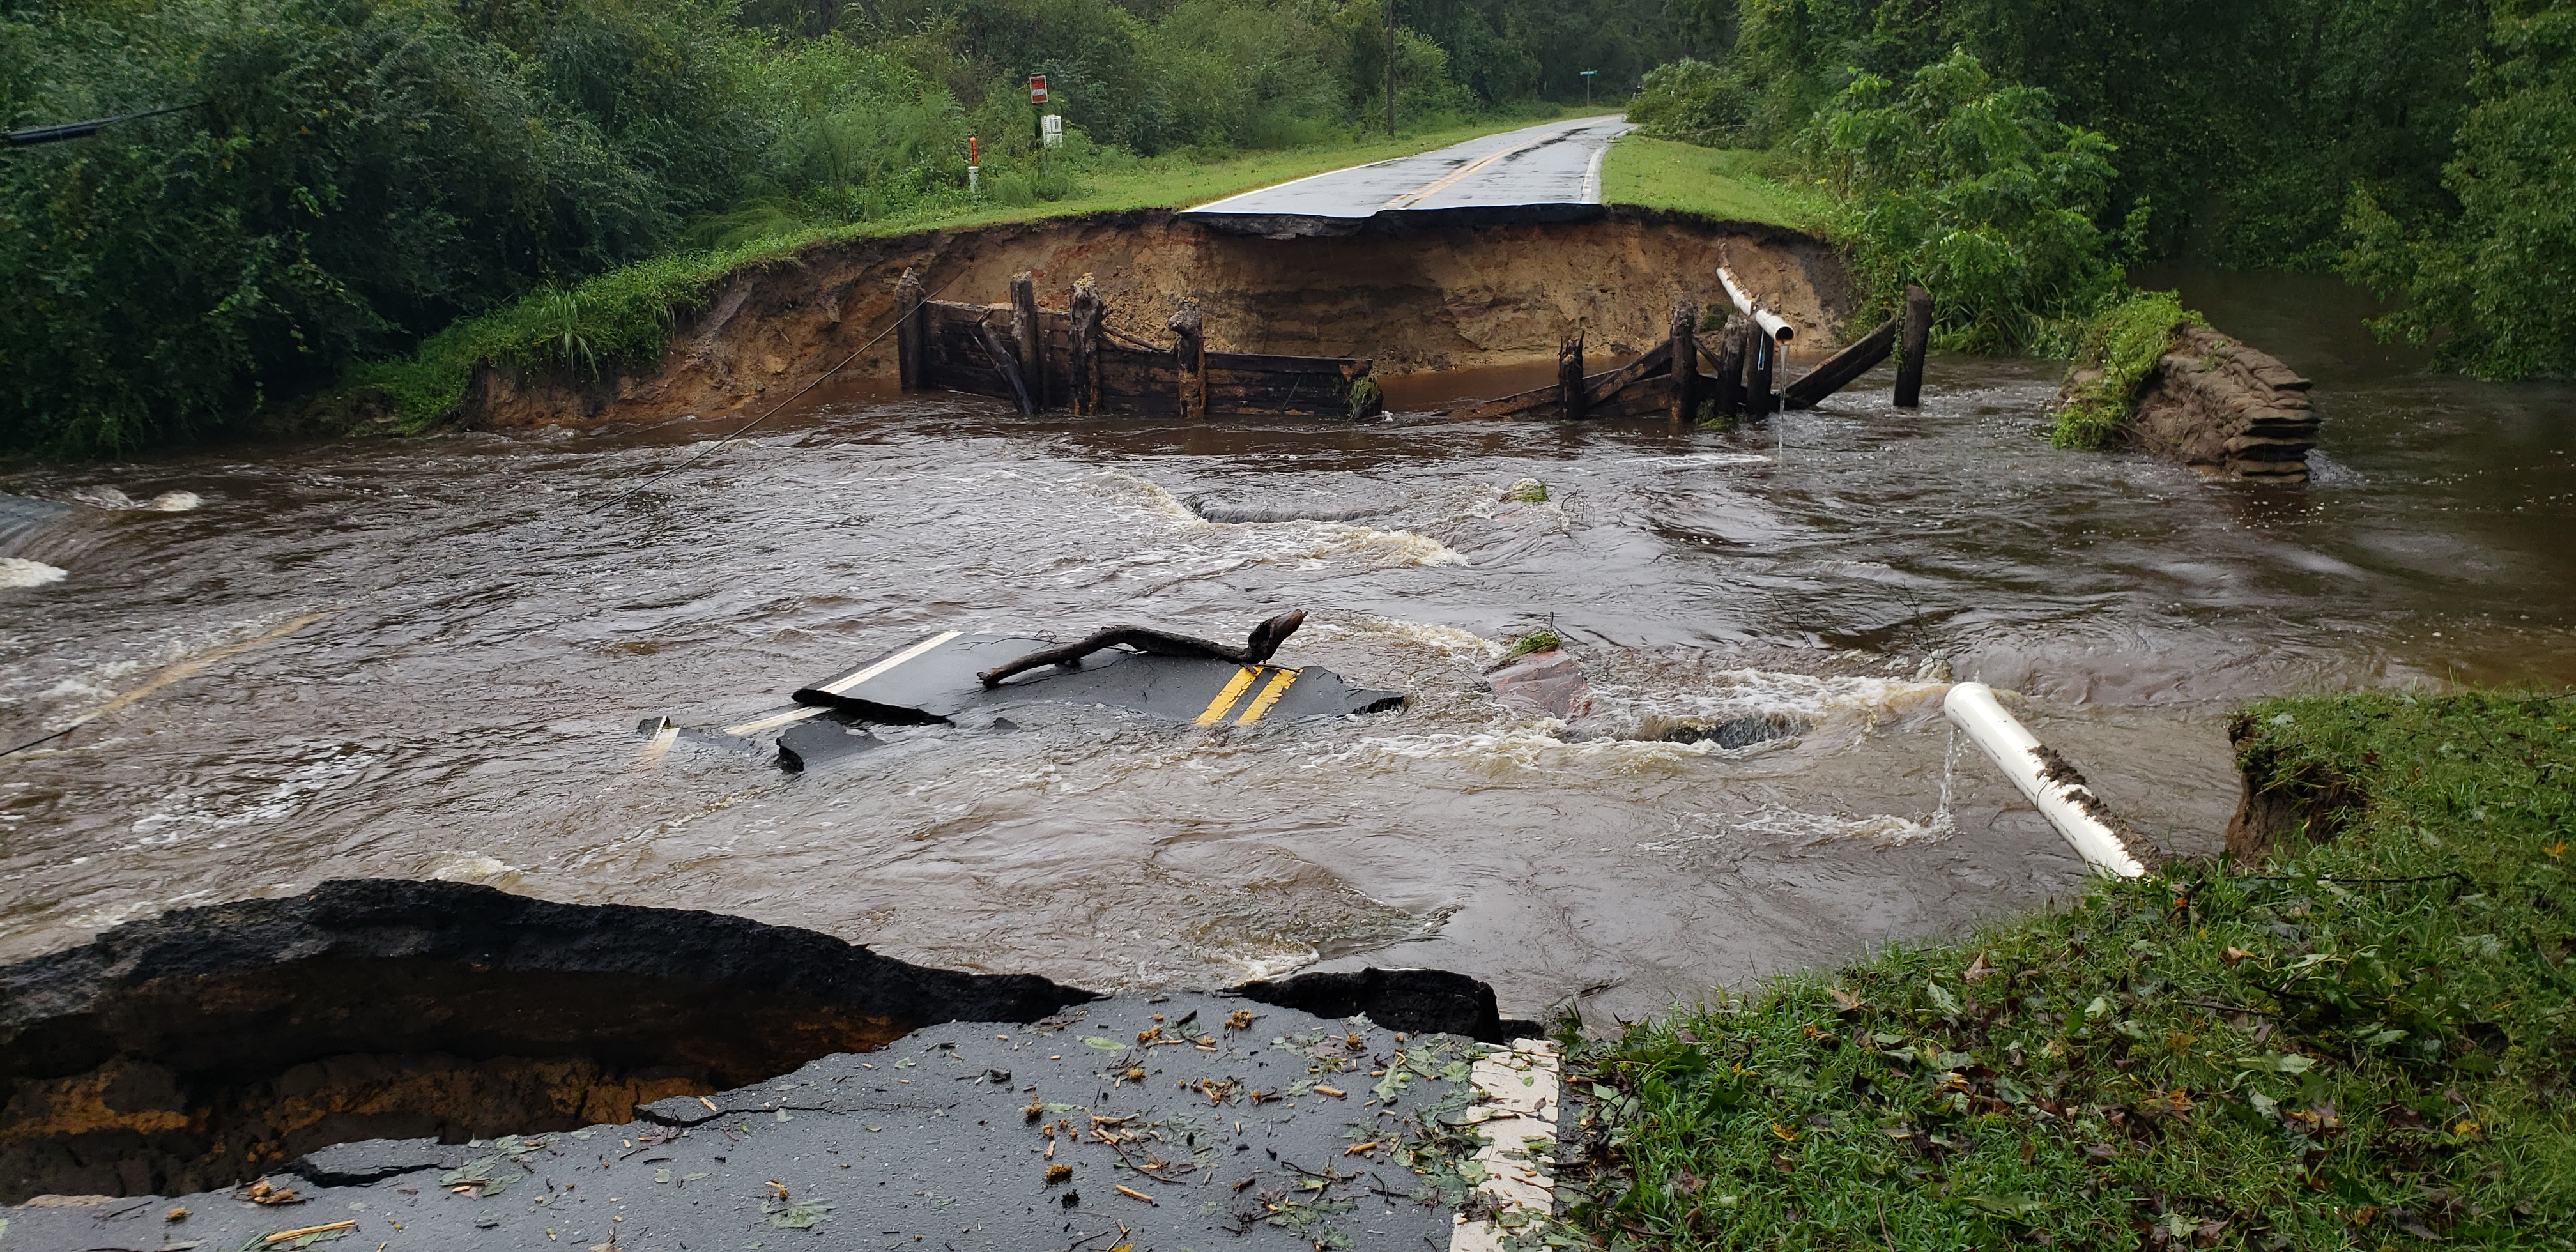 "<div class=""meta image-caption""><div class=""origin-logo origin-image wtvd""><span>WTVD</span></div><span class=""caption-text"">This road was washed out near Bear Marsh Church. (ABC11 Eyewitness - Jeremy Henderson)</span></div>"